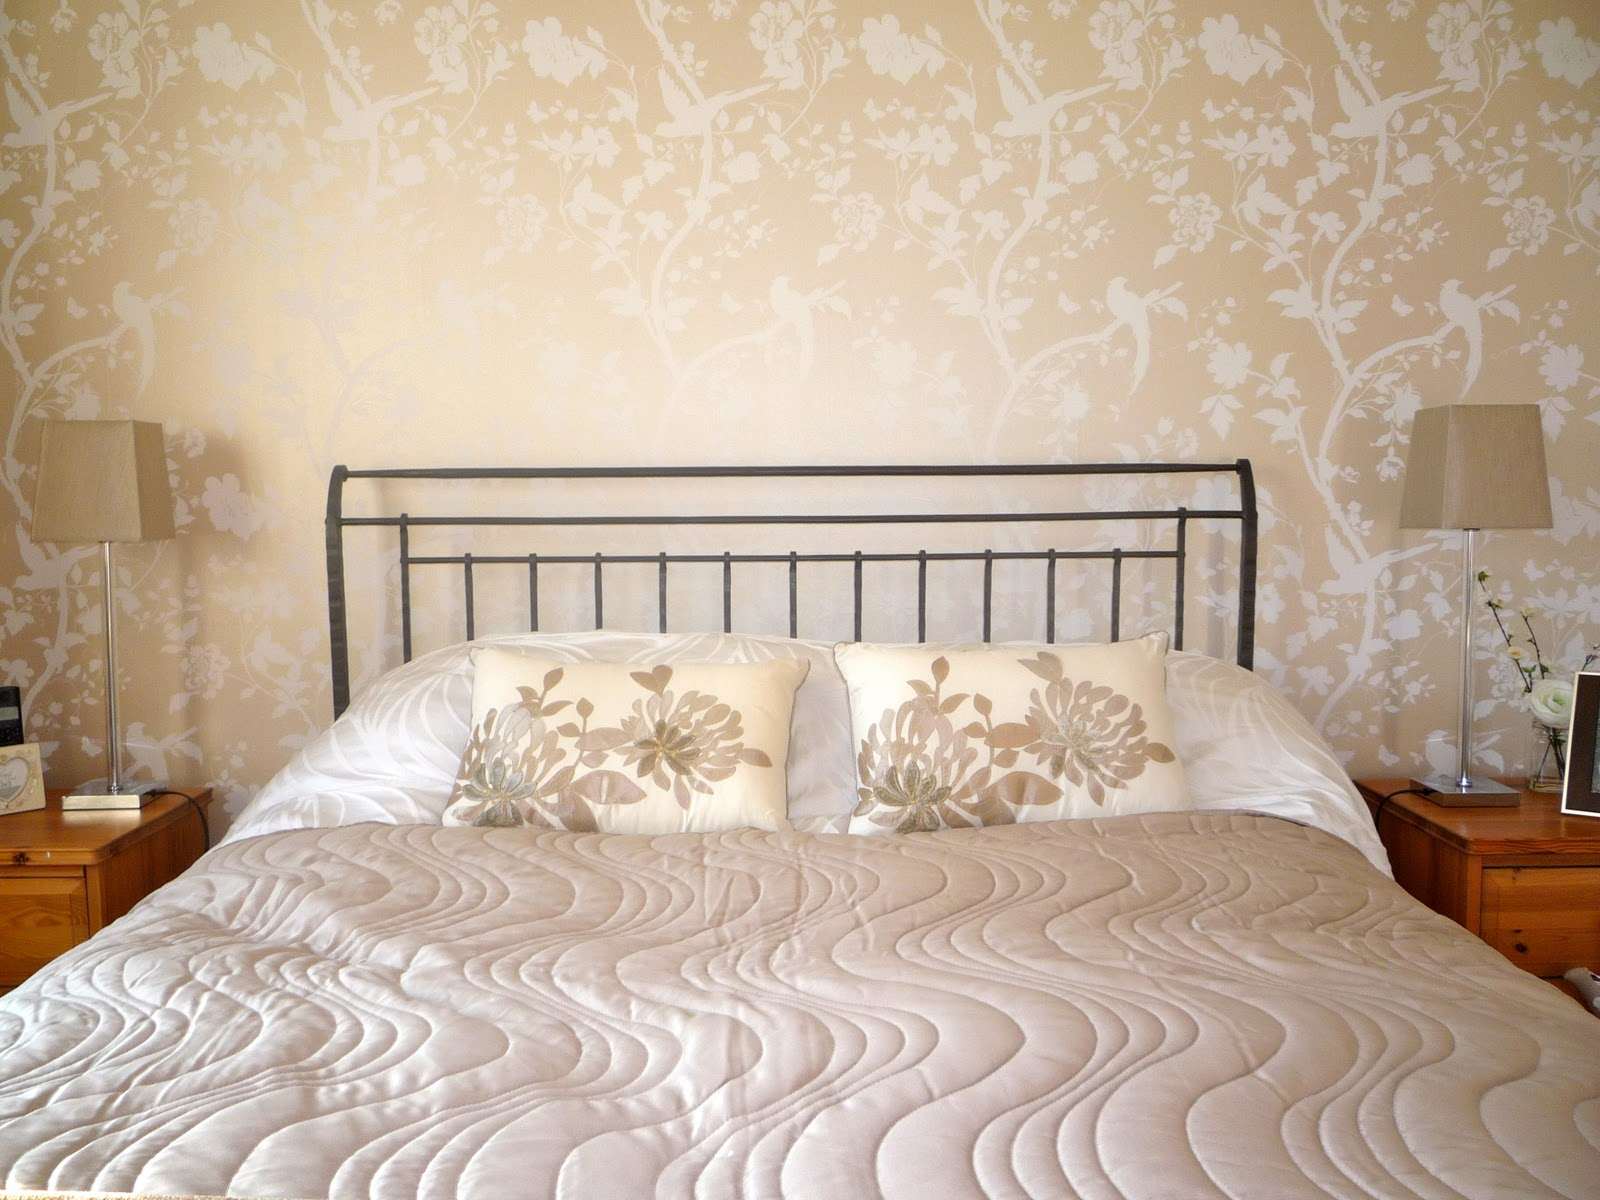 There are many ways to decorate. Download Buy Discontinued Laura Ashley Wallpaper Gallery